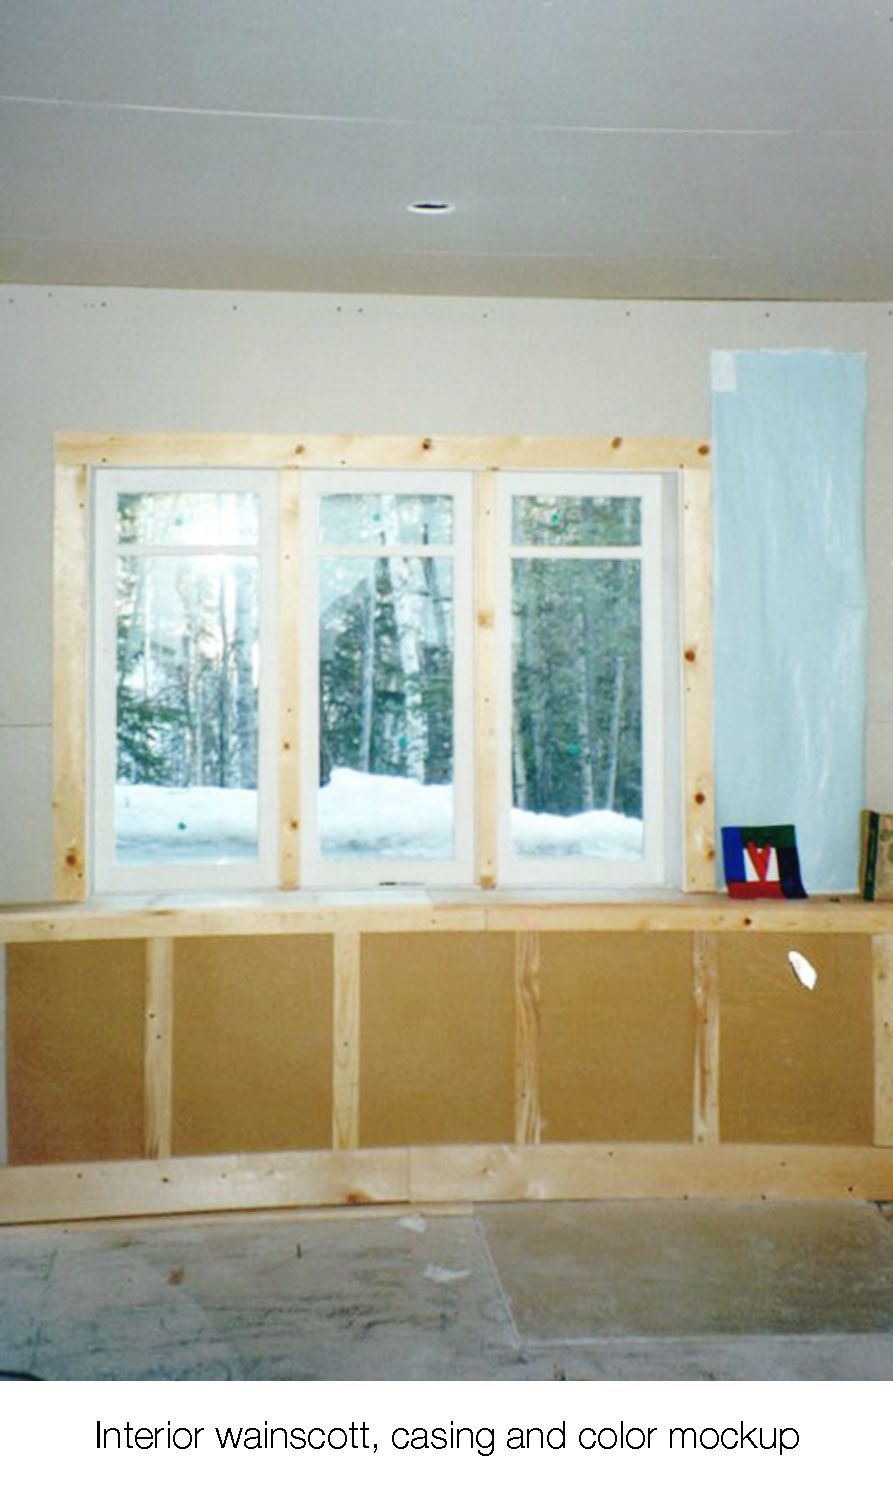 House on the meadow dining room window casing, wainscotting and color mock-ups